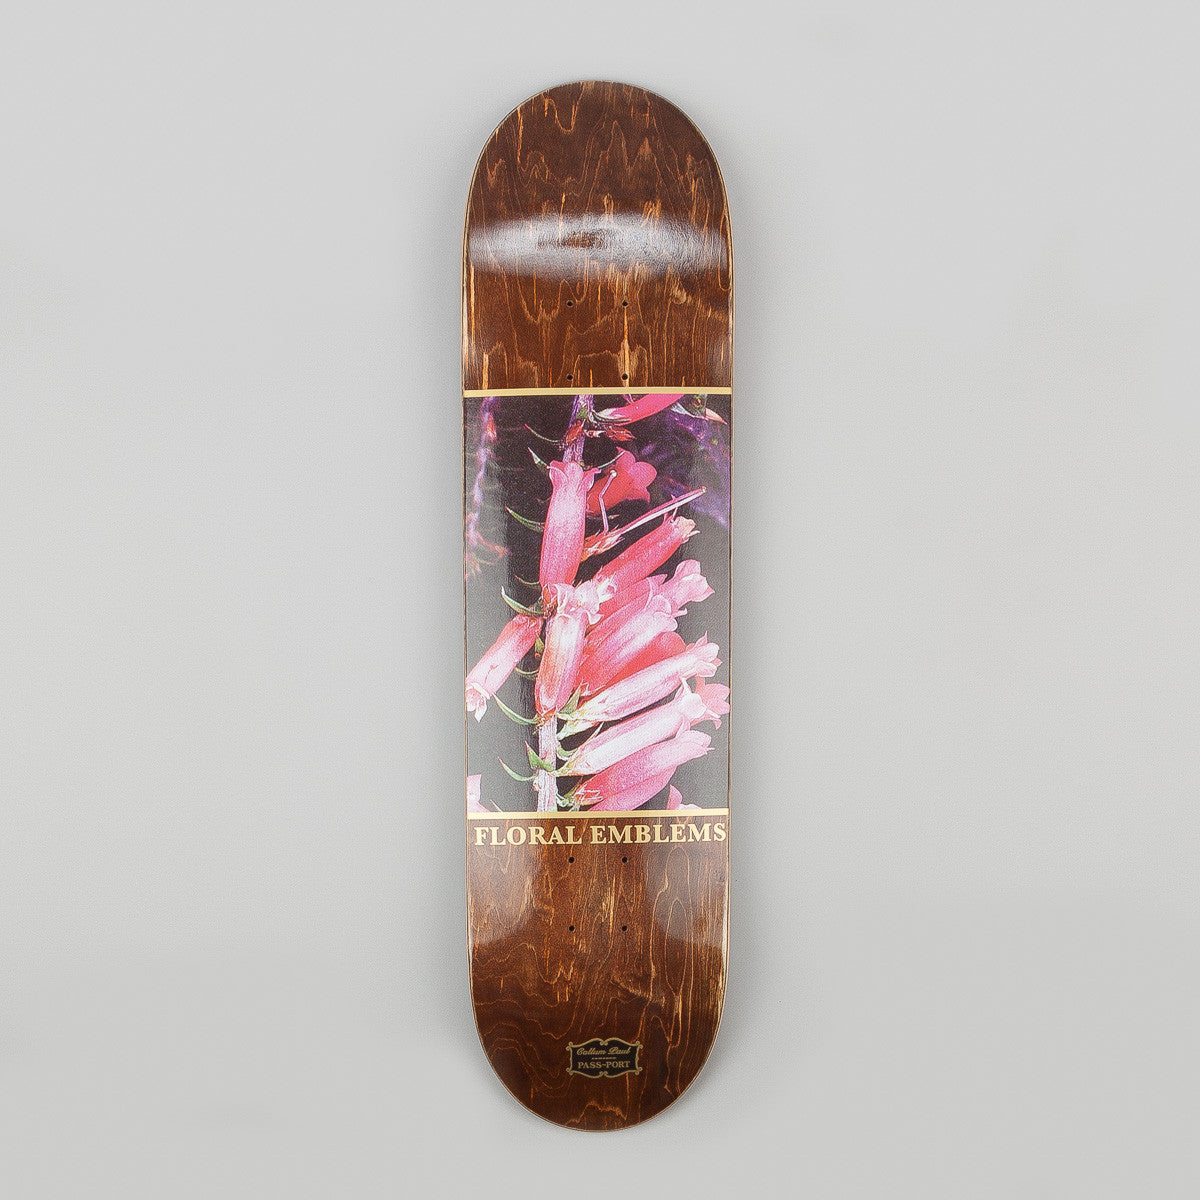 Pass Port Floral Emblems Callum Paul Deck